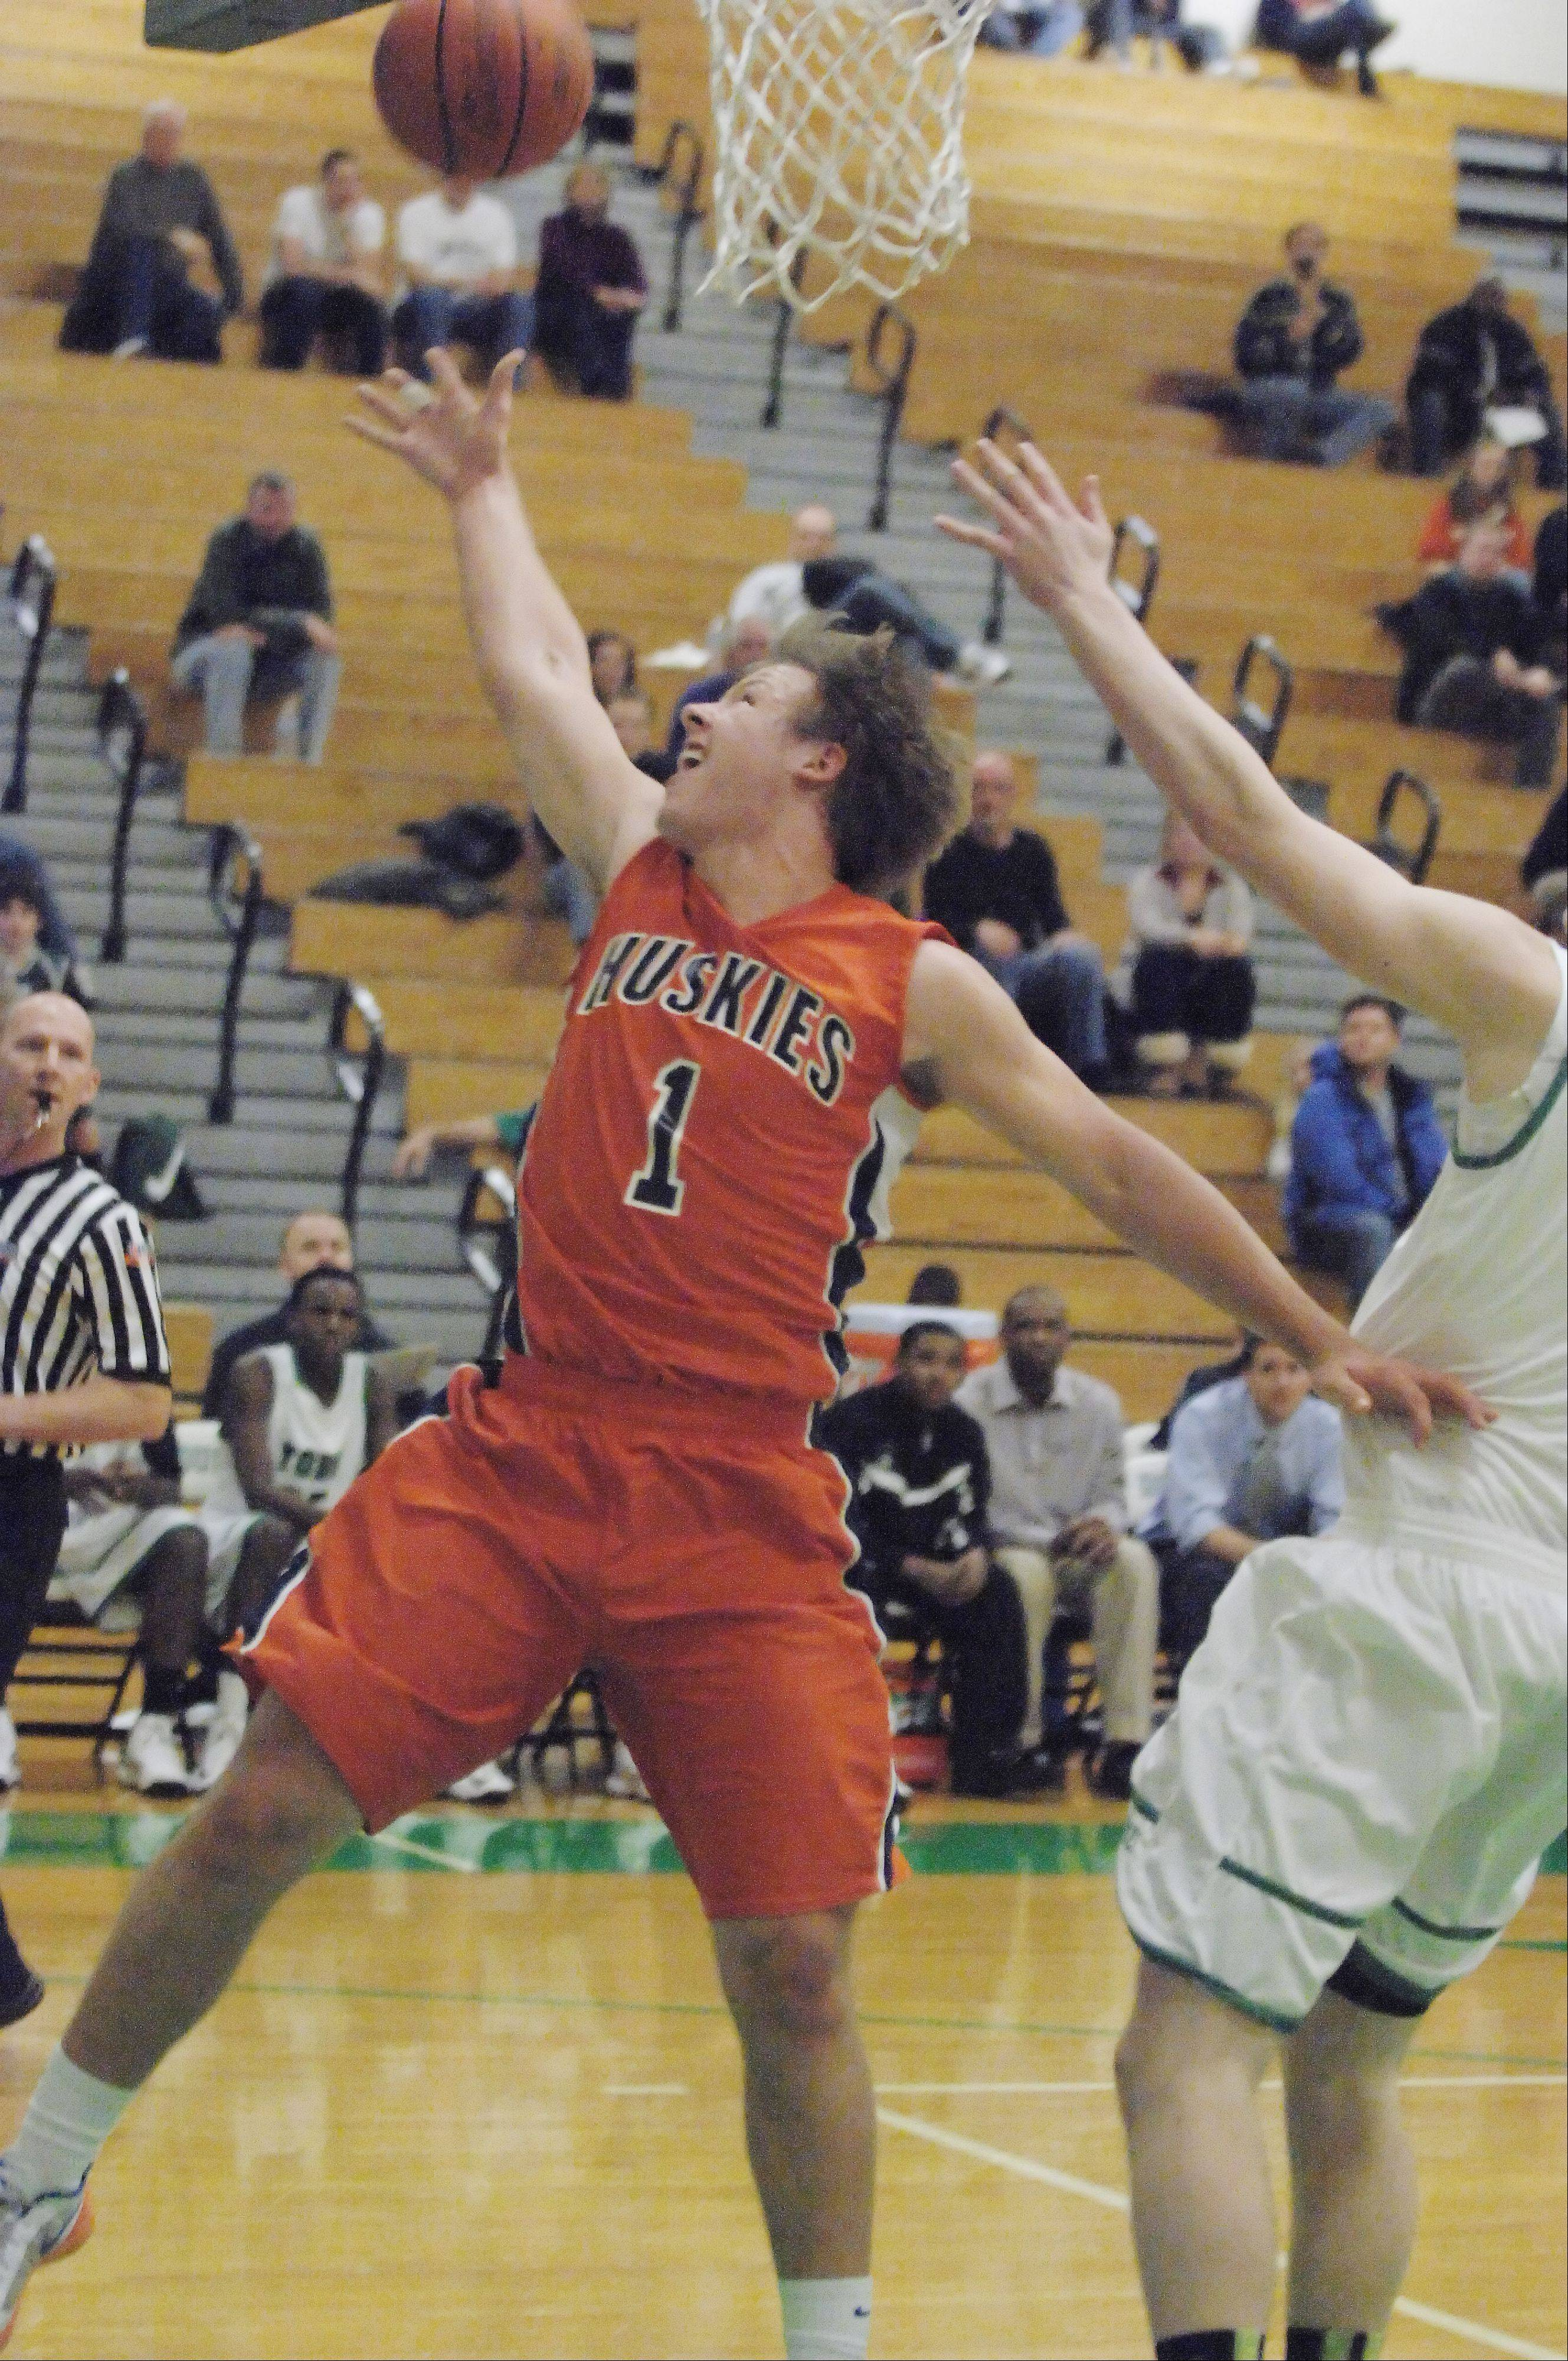 Derek Westman of Naperville North brings the ball to the net during the Naperville North vs. York boys basketball game Friday,